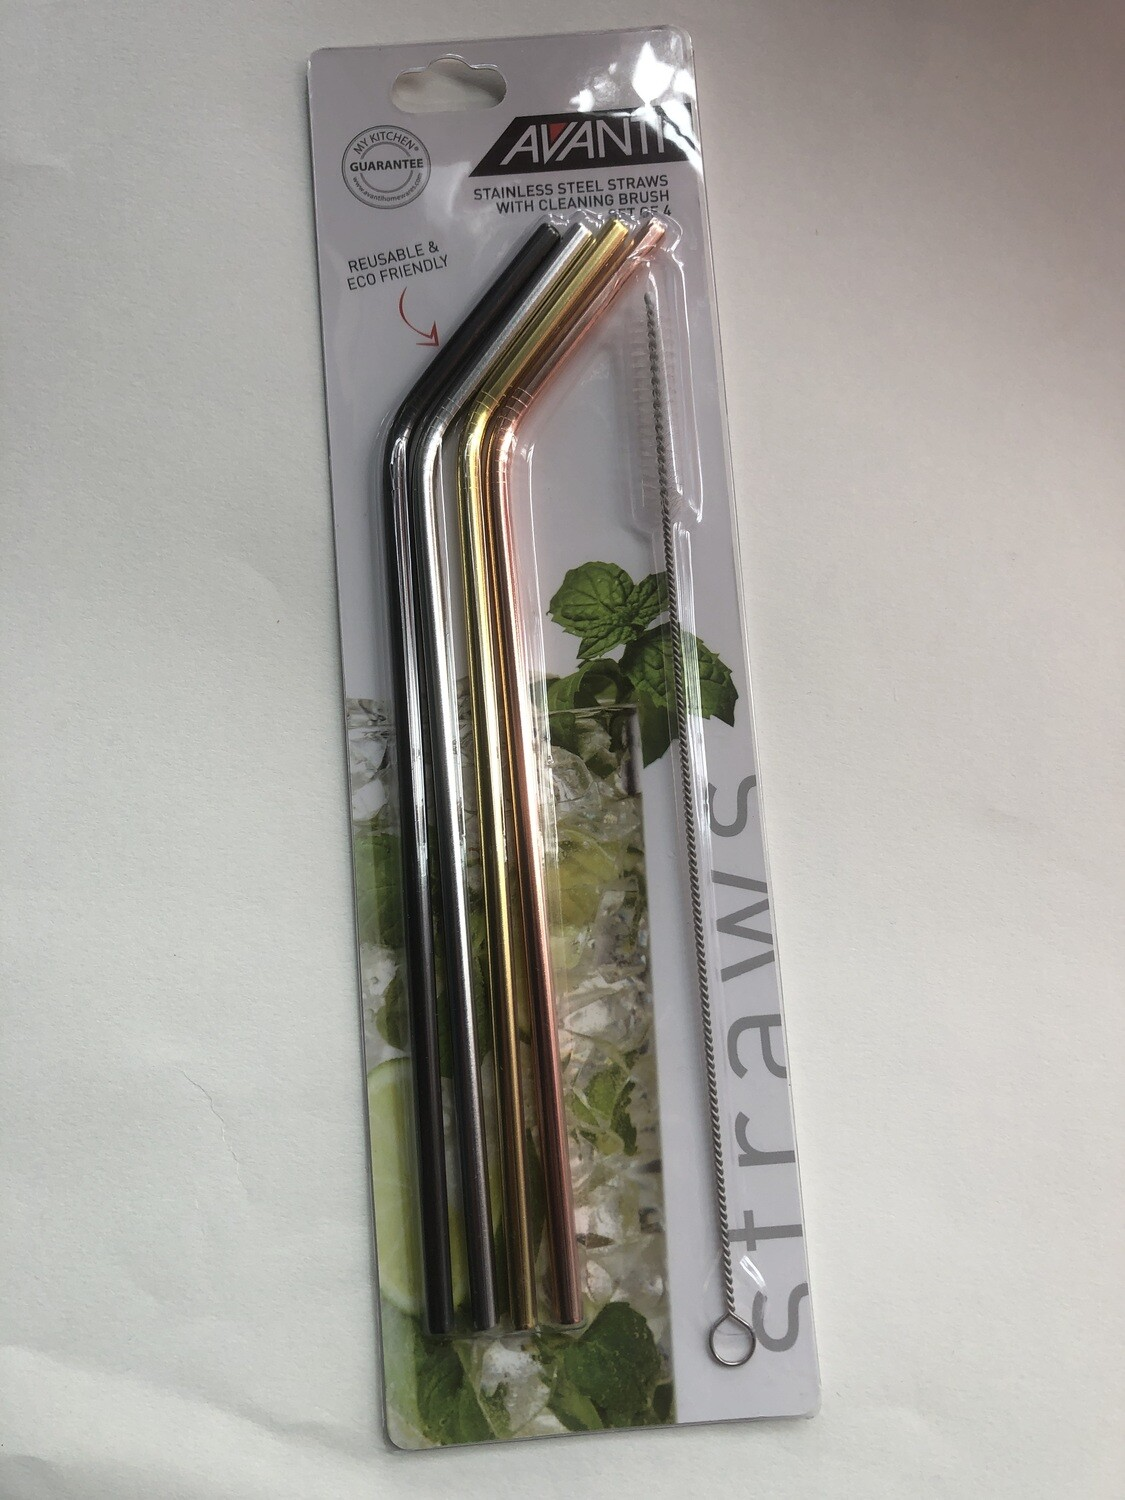 AVANTI Stainless Steel Straws with Cleaning Brush-Set of 4